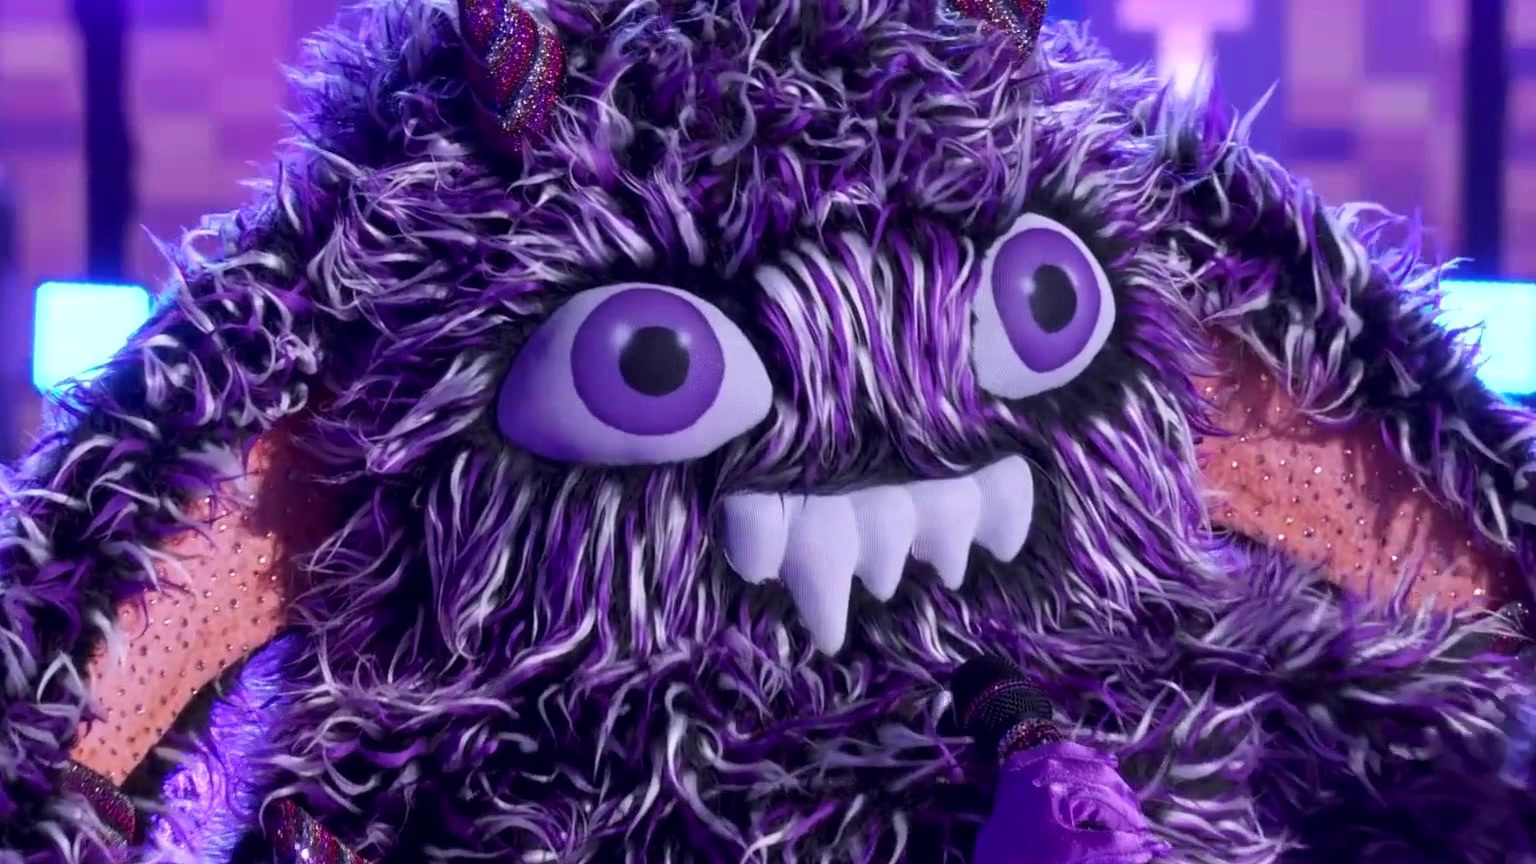 The Masked Singer: The Gremlin's First Interview Without The Mask